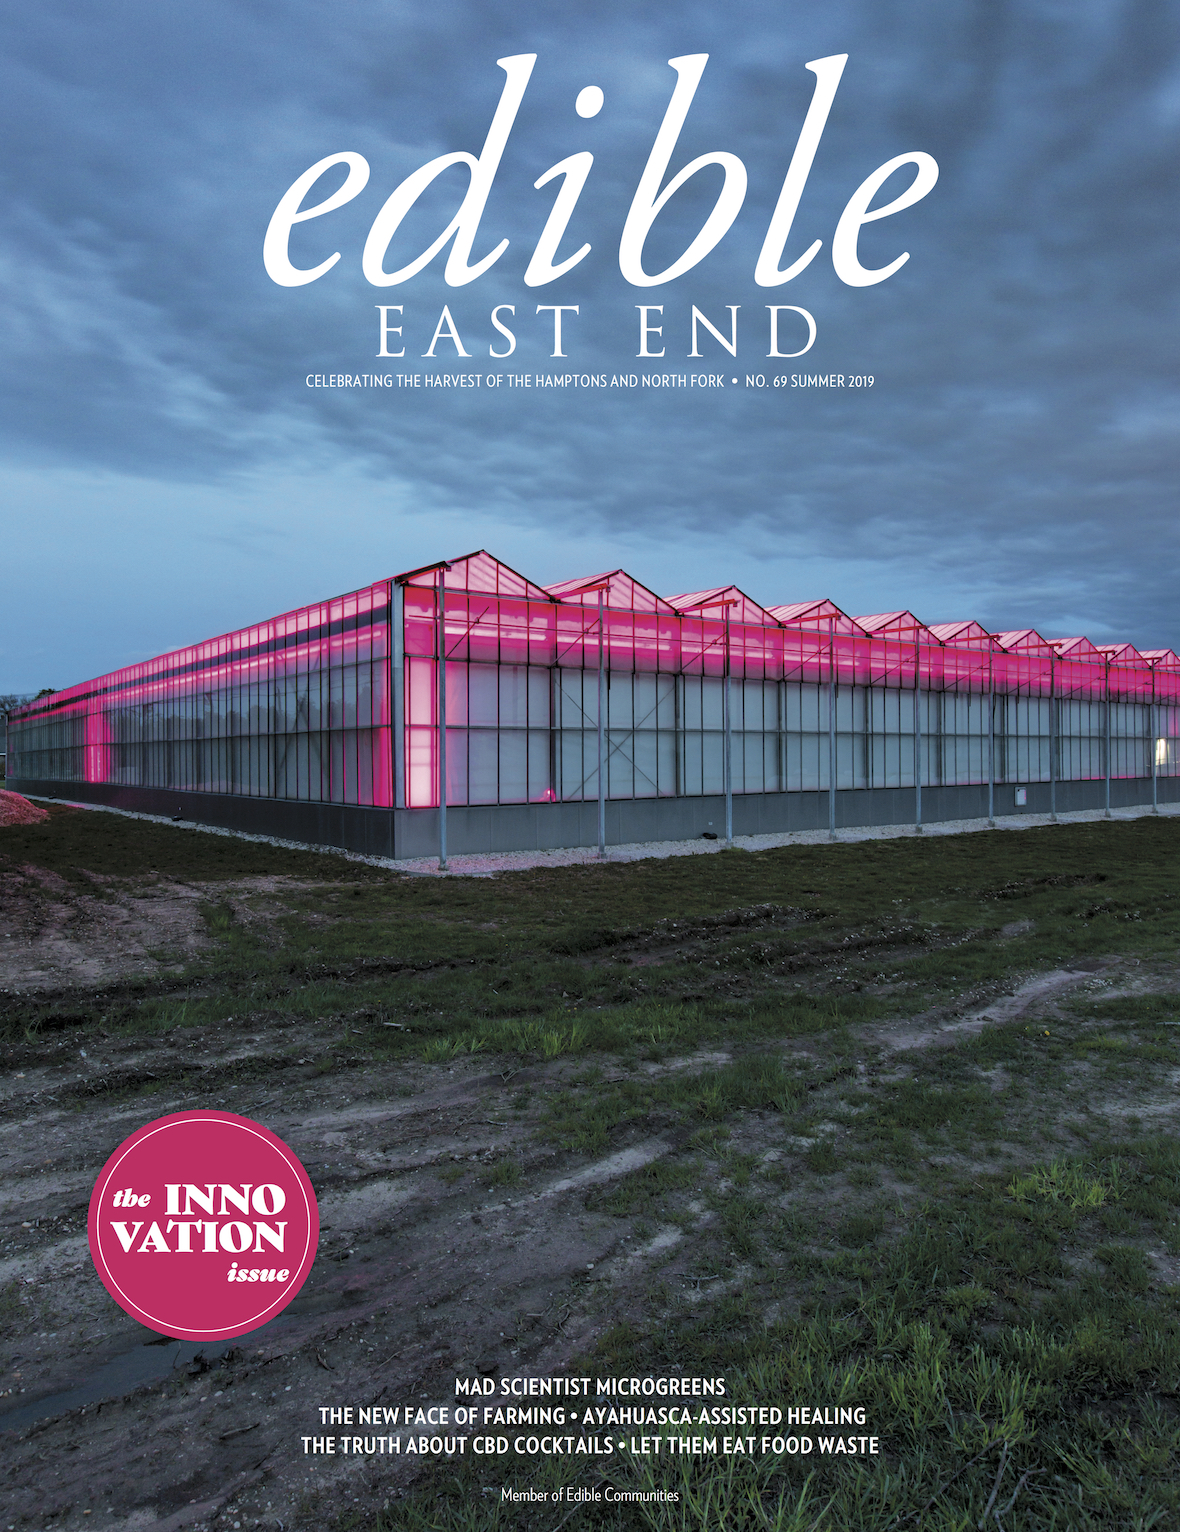 innovation issue 2019 edible east end